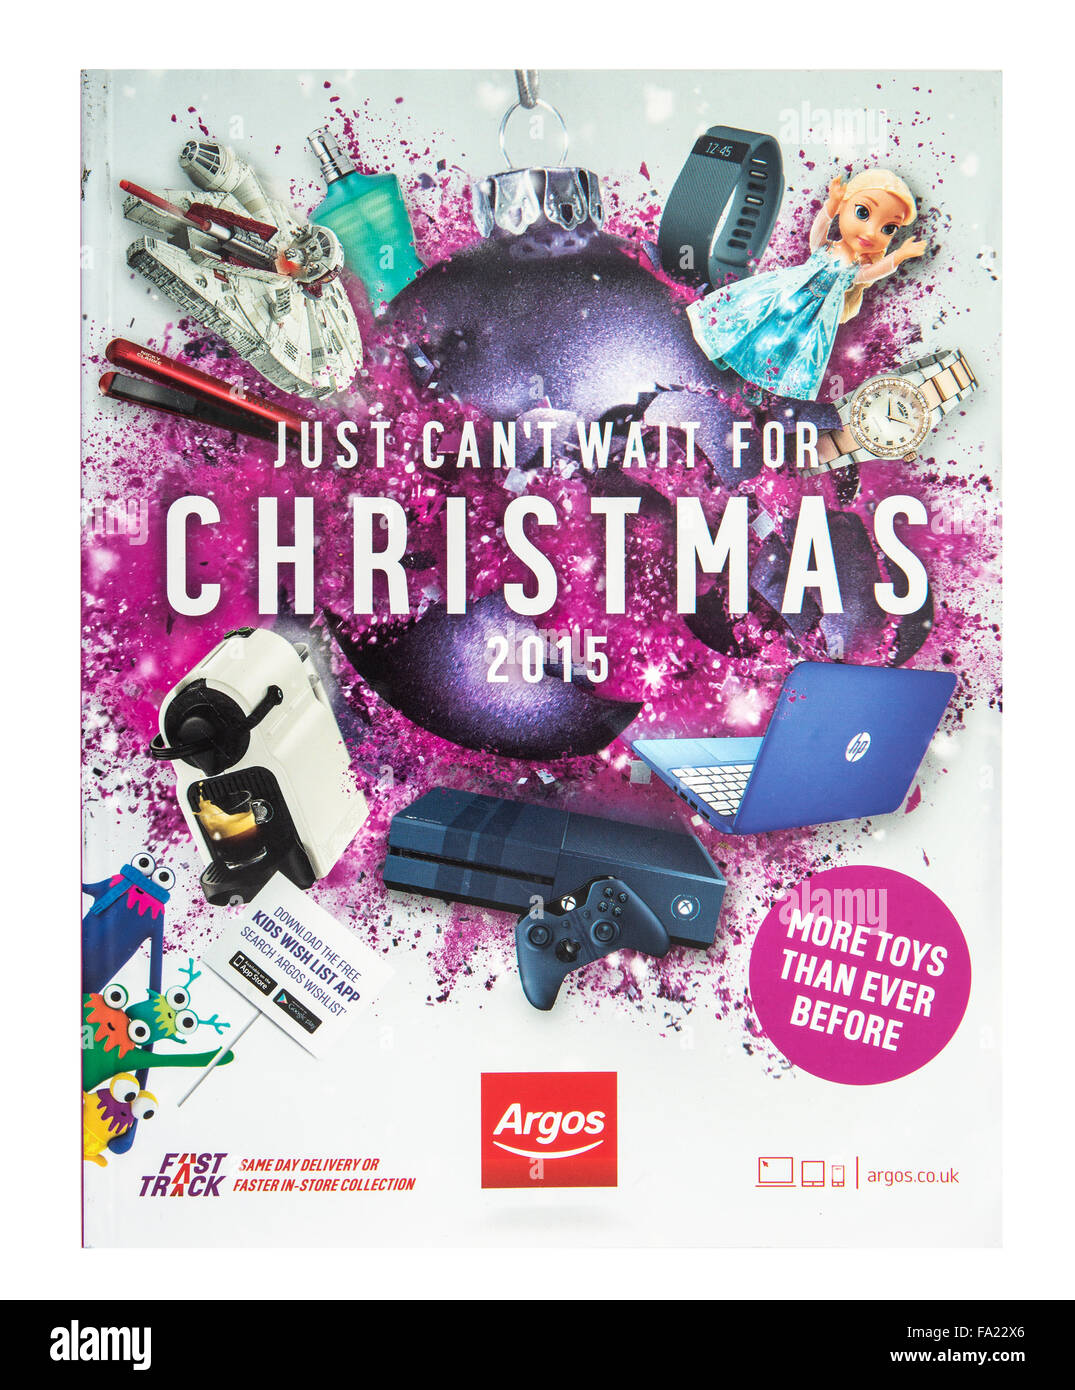 Argos Just Cant Wait For Christmas 2015 - Stock Image